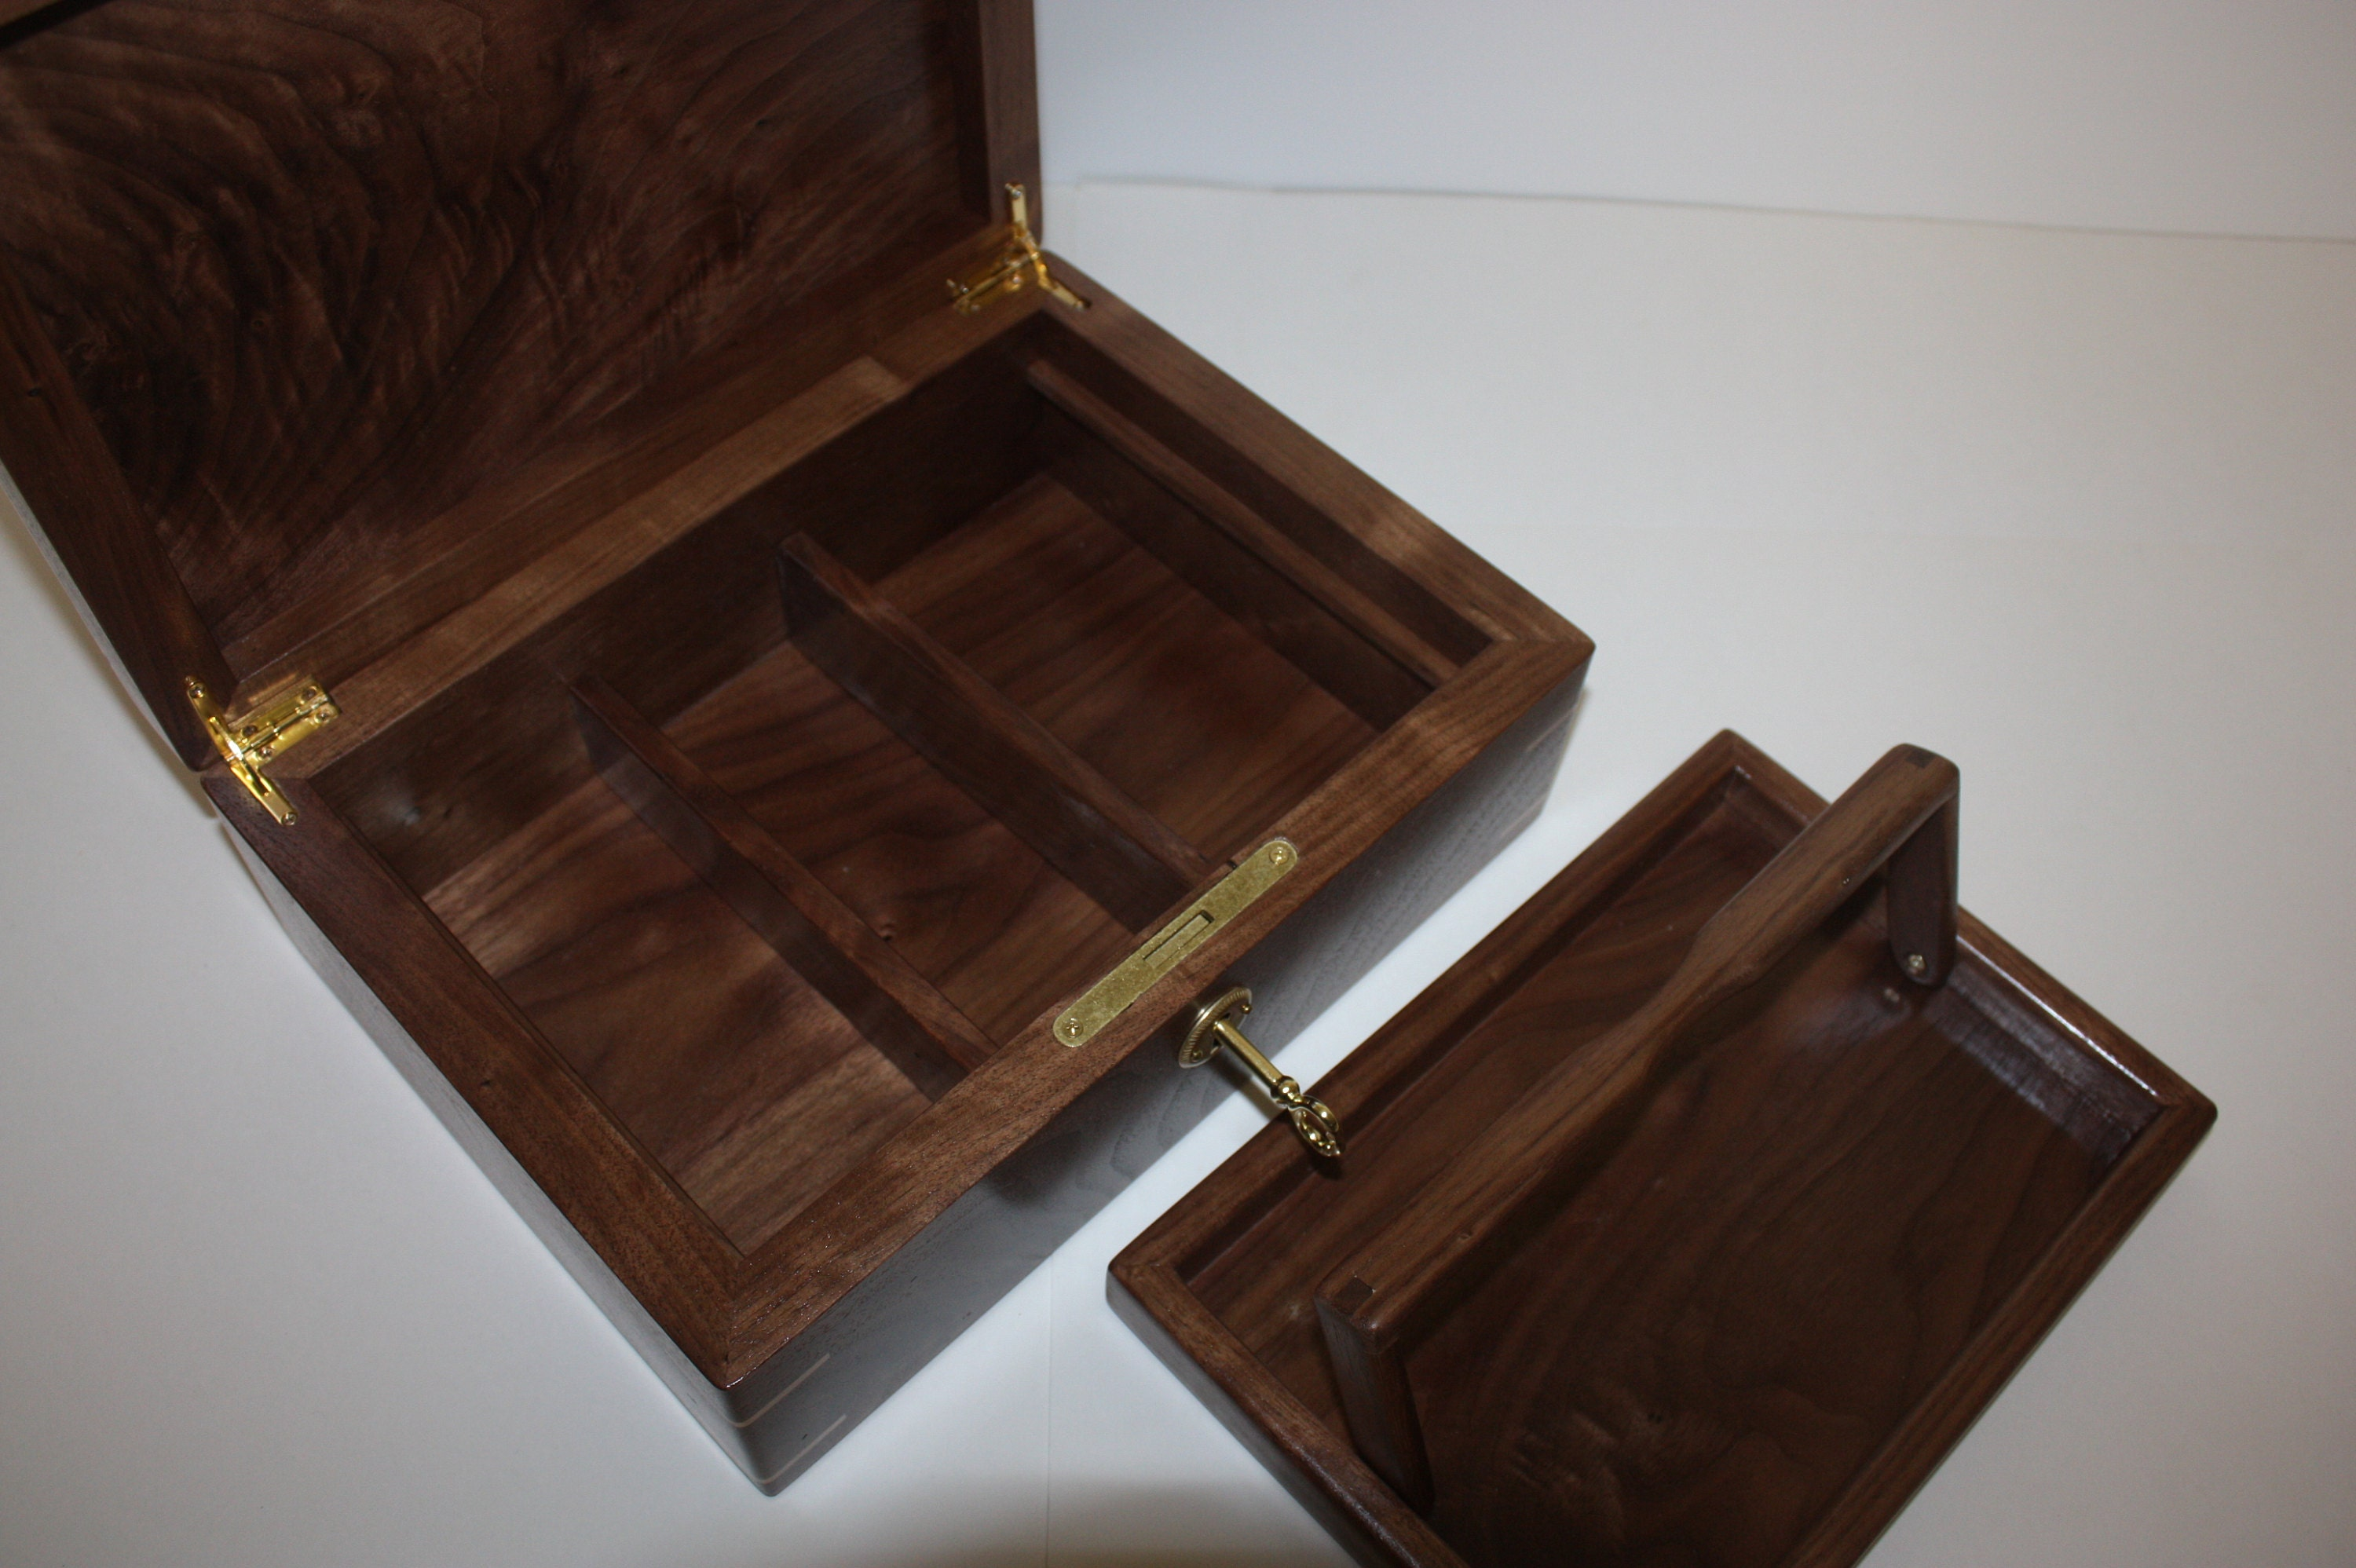 Walnut Box with Lift out tray and dividers